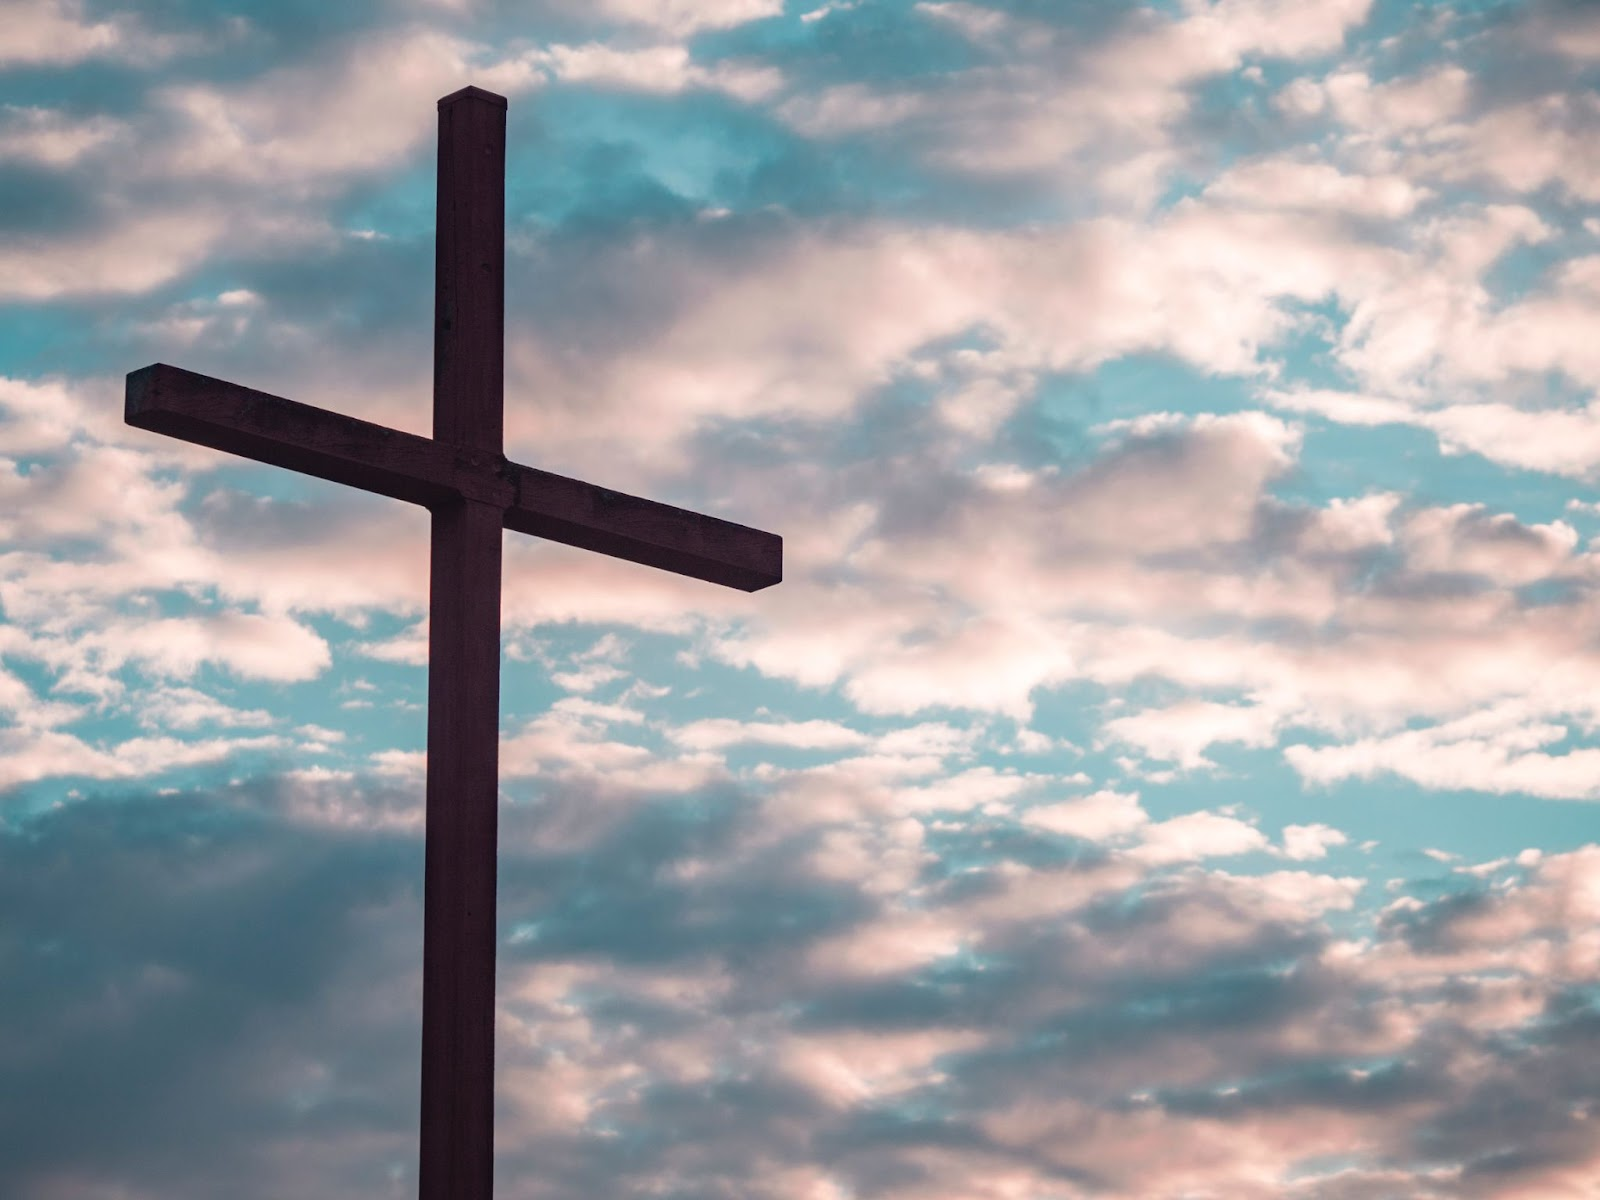 Cross against a bright and cloudy sky